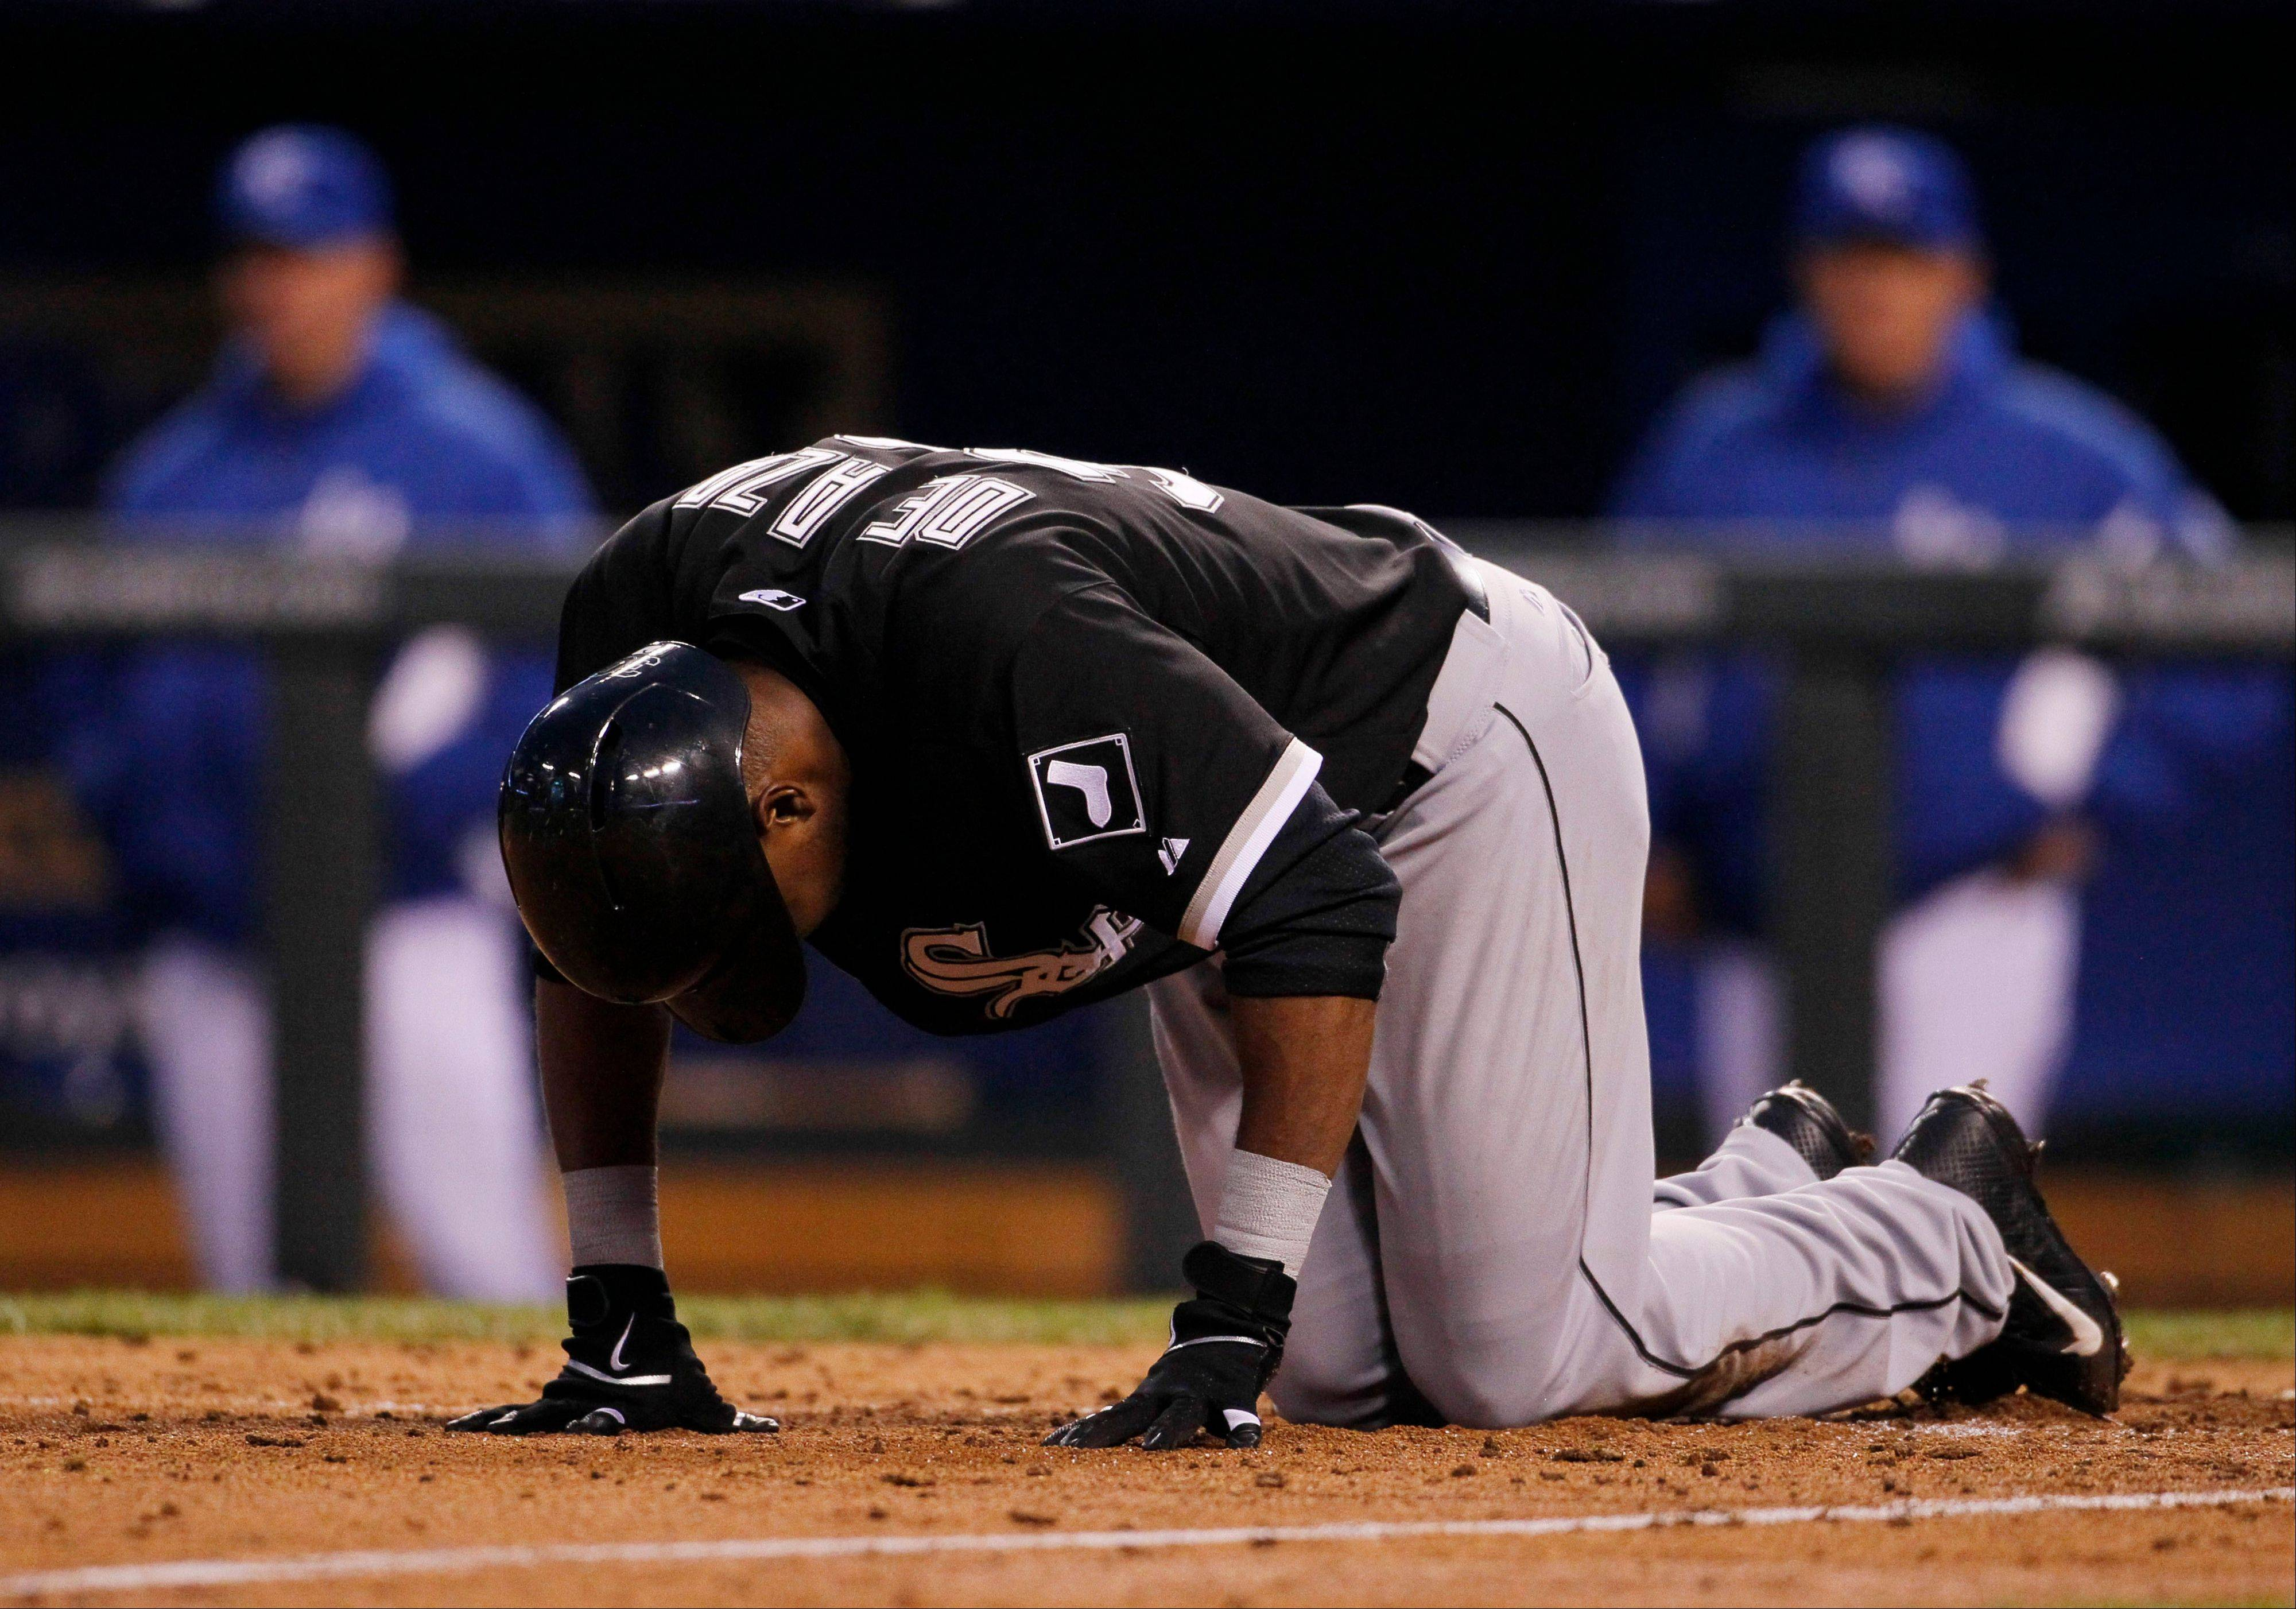 Chicago White Sox batter Alejandro De Aza falls to the ground after fouling off the ball on to his leg in the seventh inning against the Kansas City Royals at Kauffman Stadium in Kansas City, Mo.